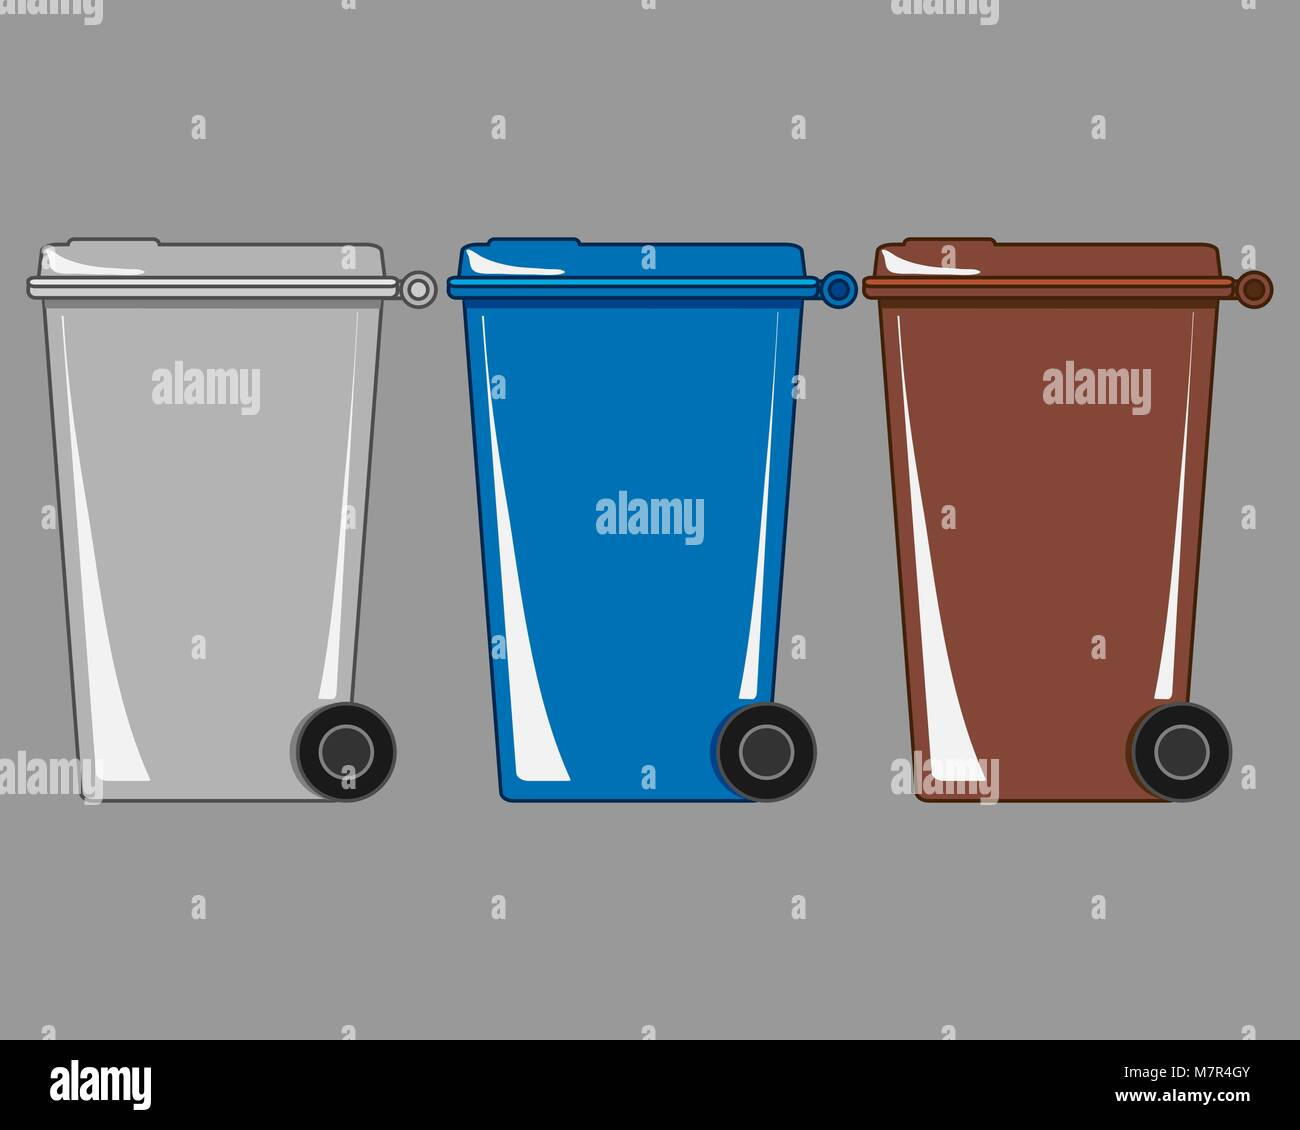 a vector illustration in eps 8 format of refuse and recycling bins on a gray background - Stock Vector